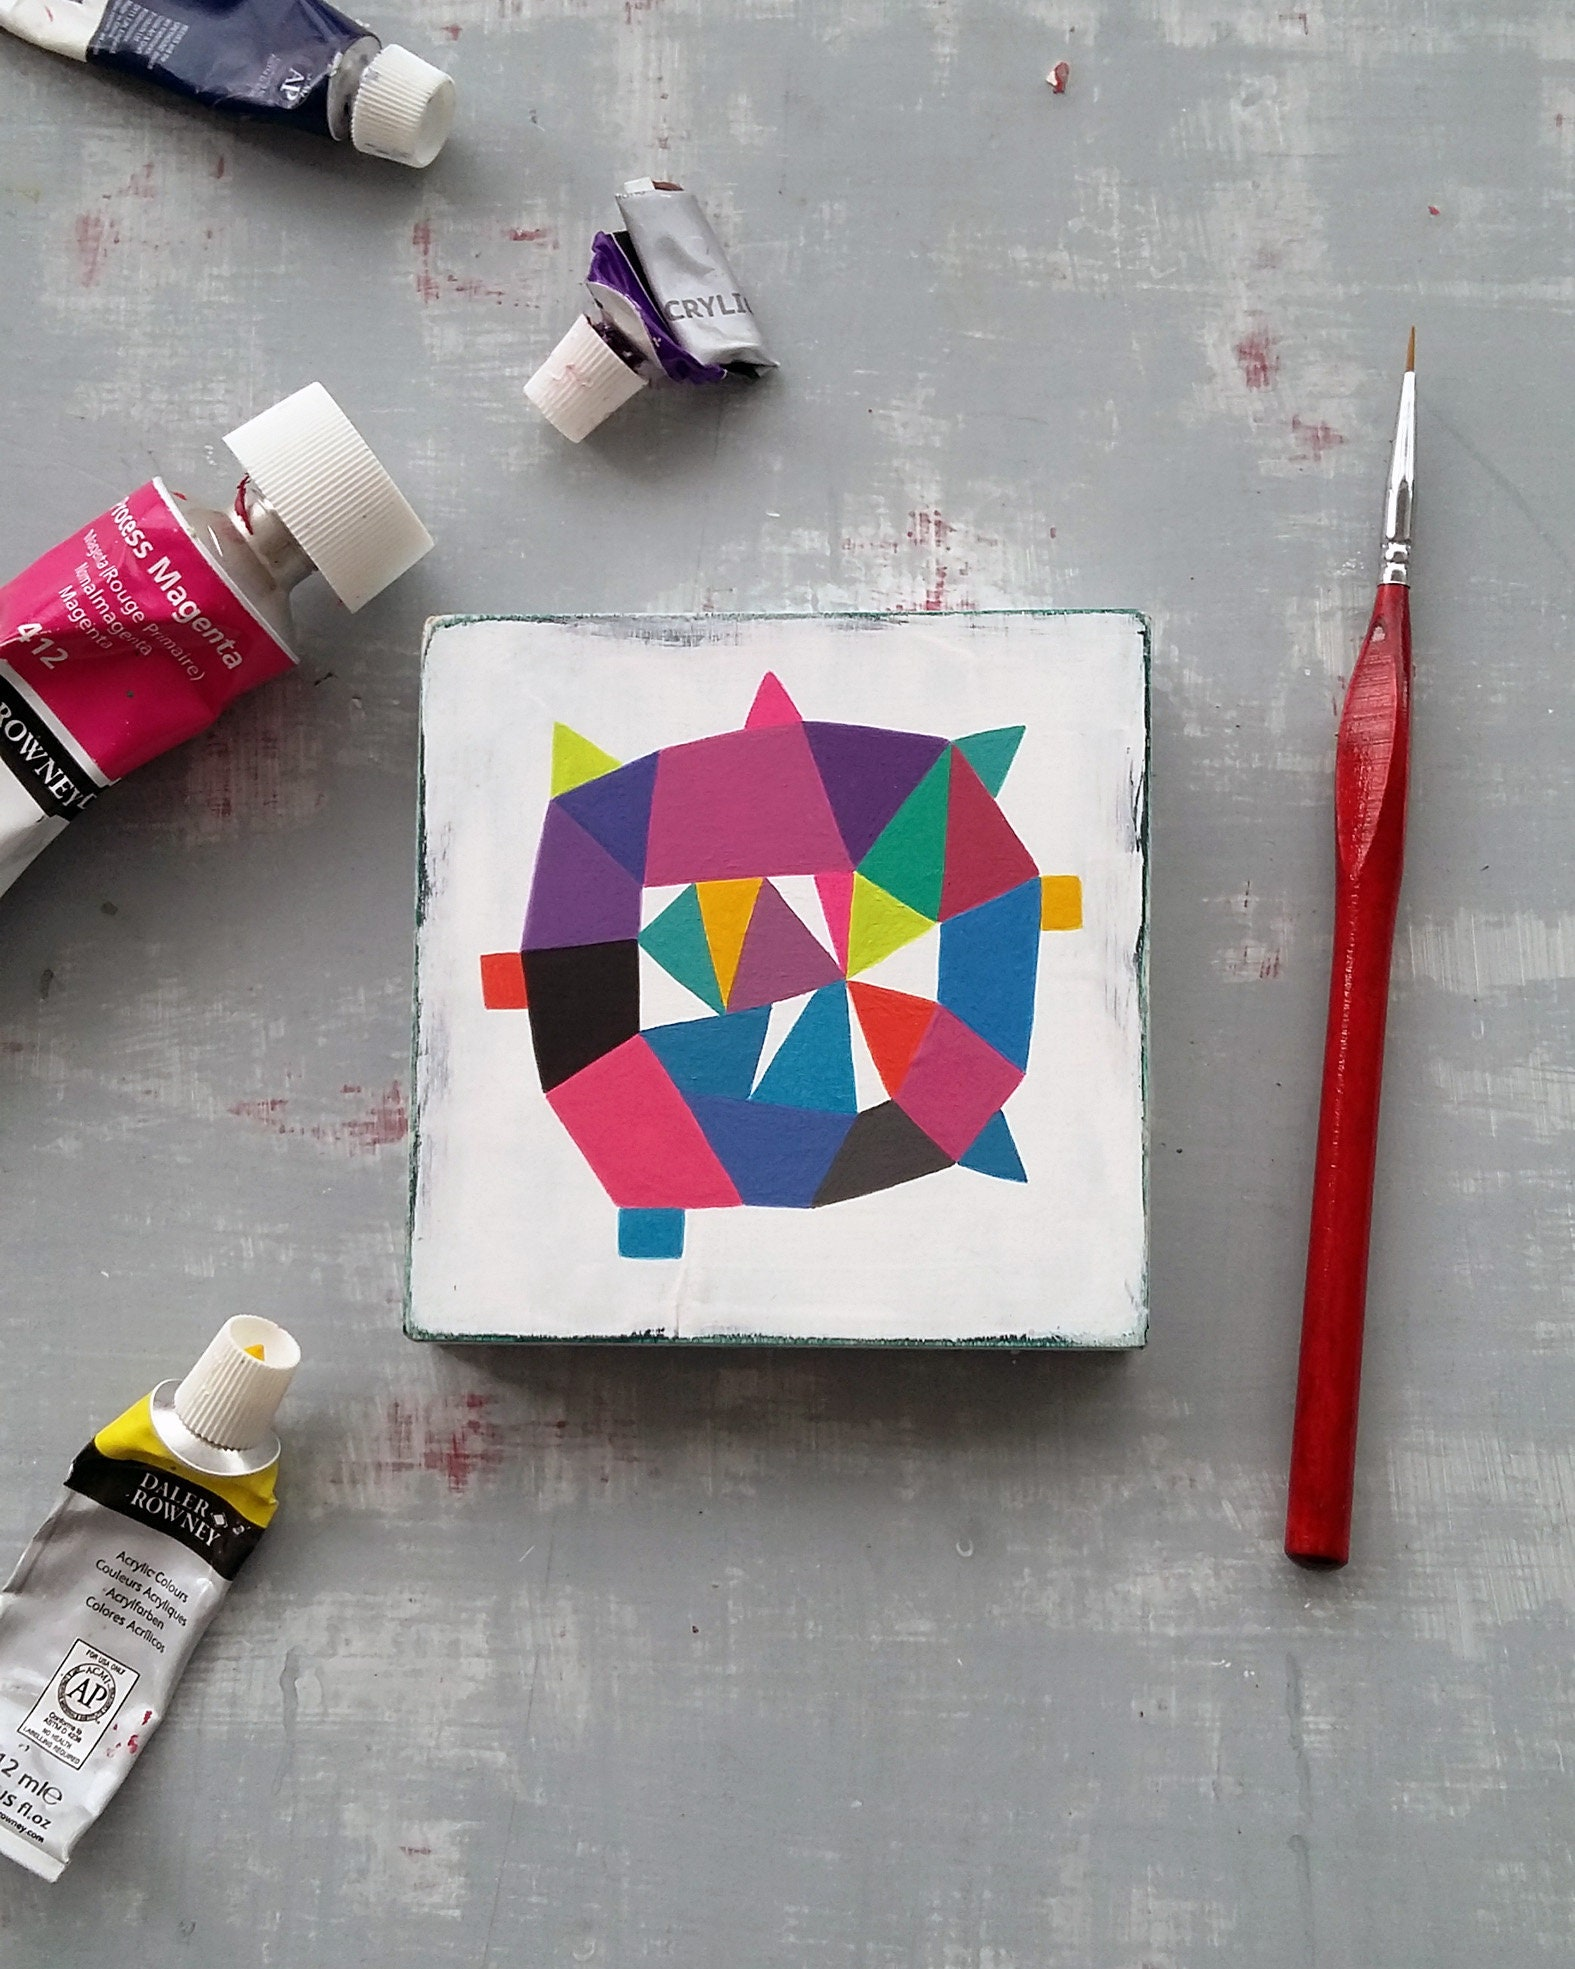 Star_005, colourful abstract painting on wood - product image